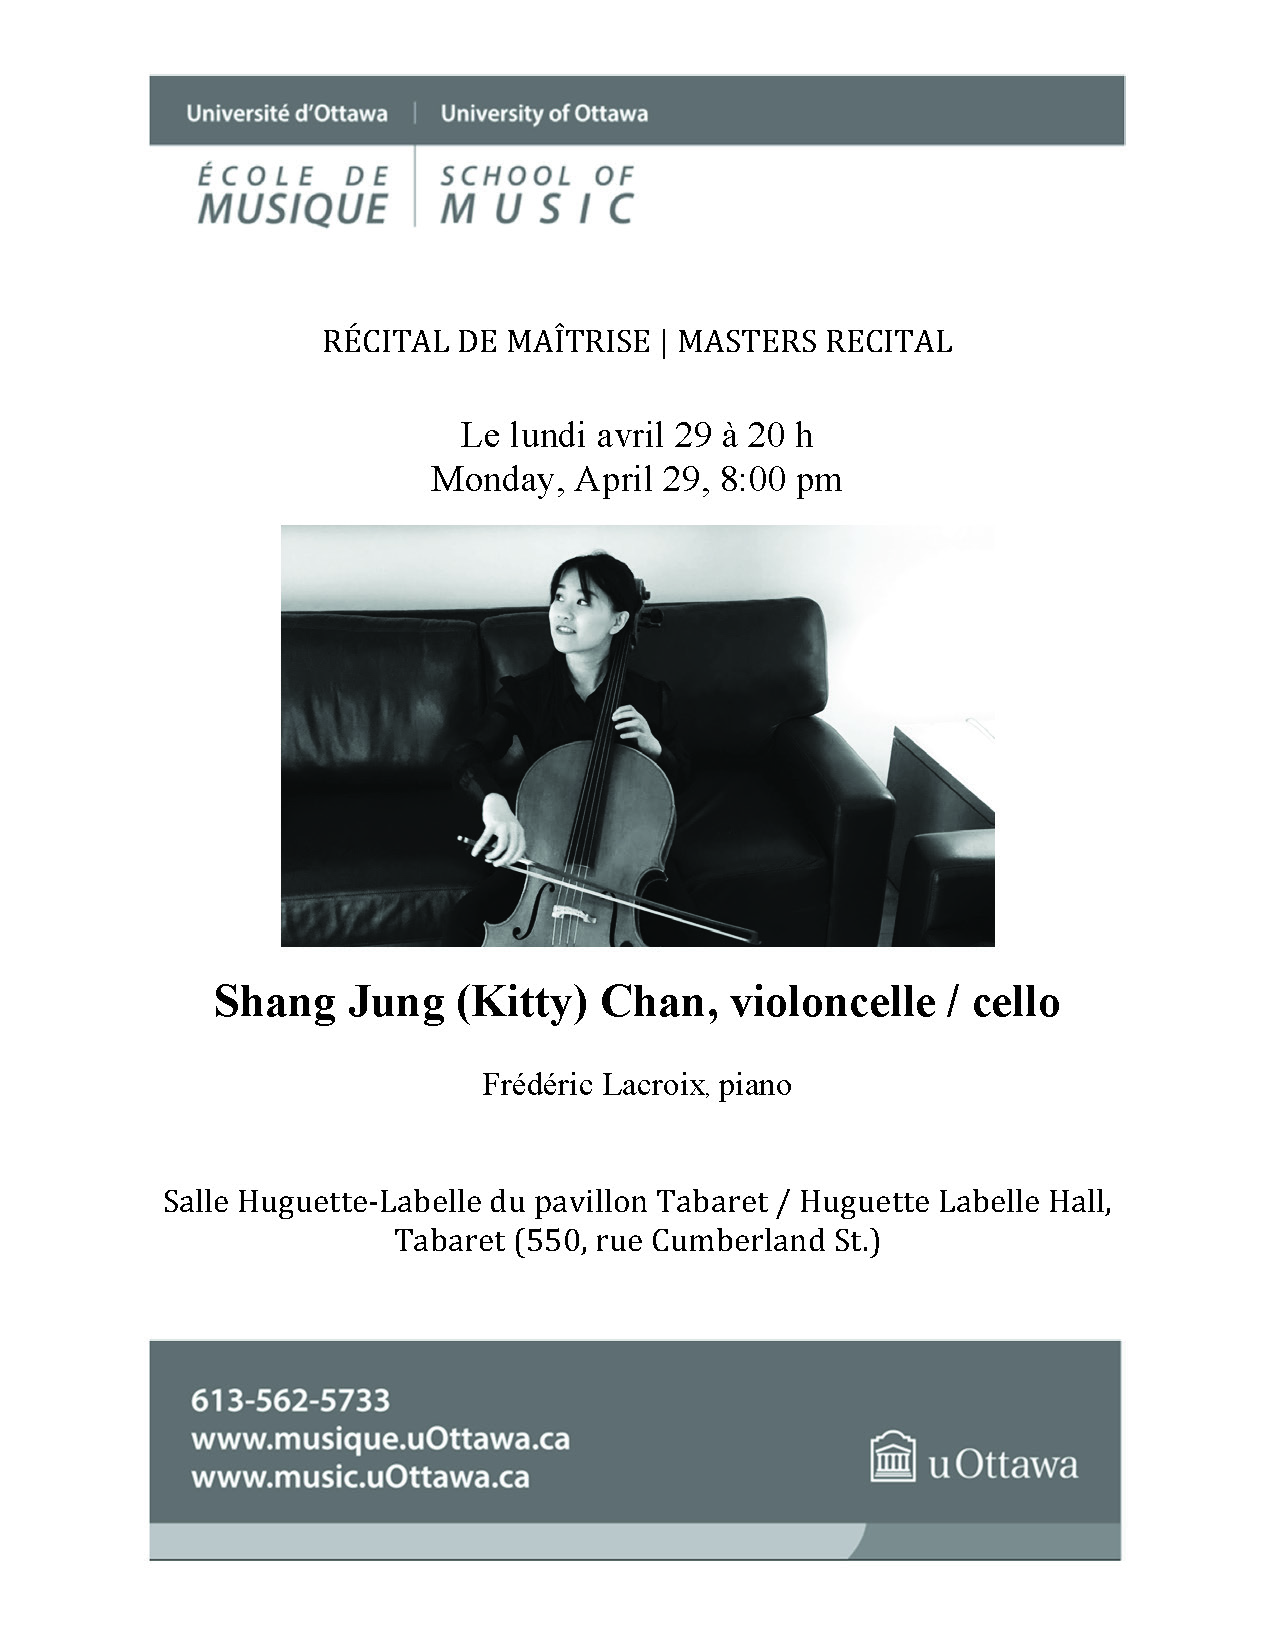 Recital program for Kitty Chan, page 1